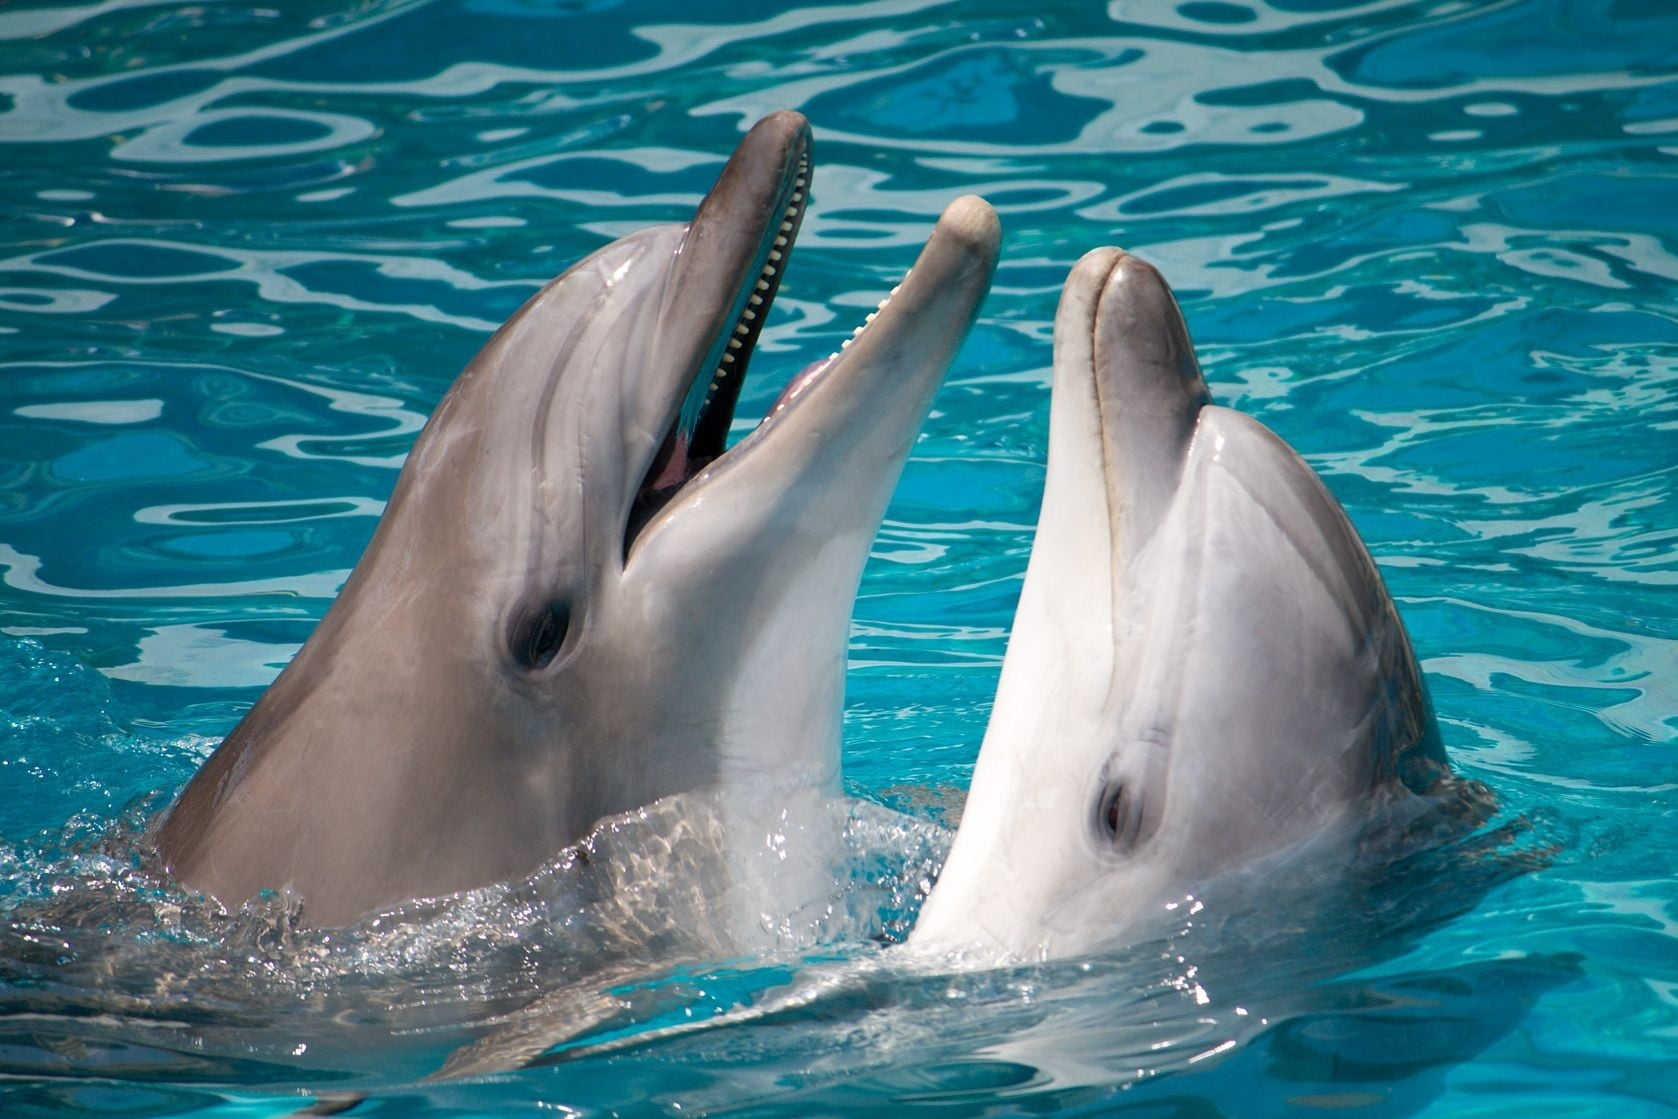 Science has discovered that dolphins call each other by name.